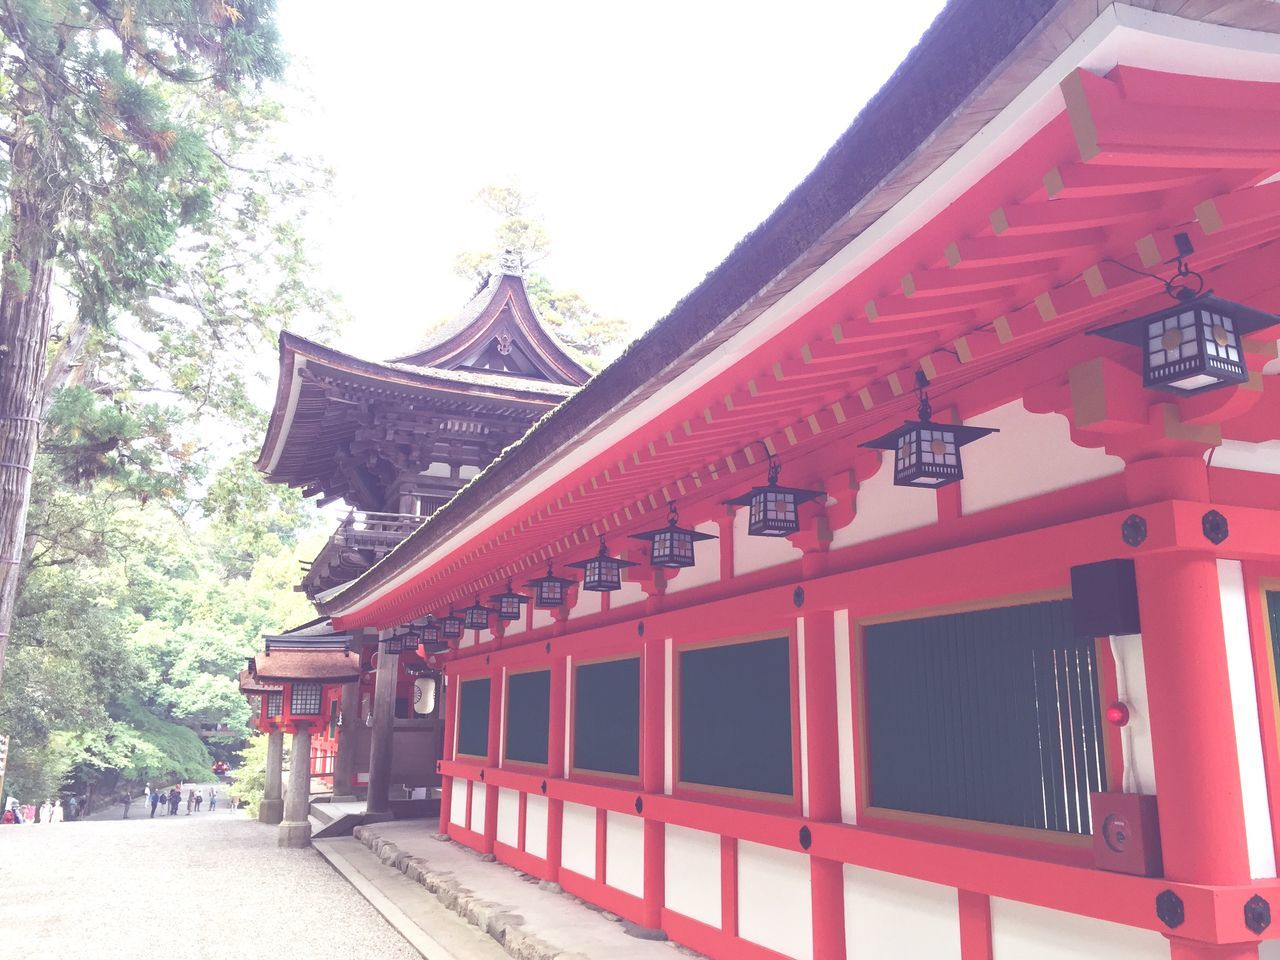 built structure, building exterior, architecture, red, day, no people, place of worship, religion, tree, outdoors, roof, travel destinations, sky